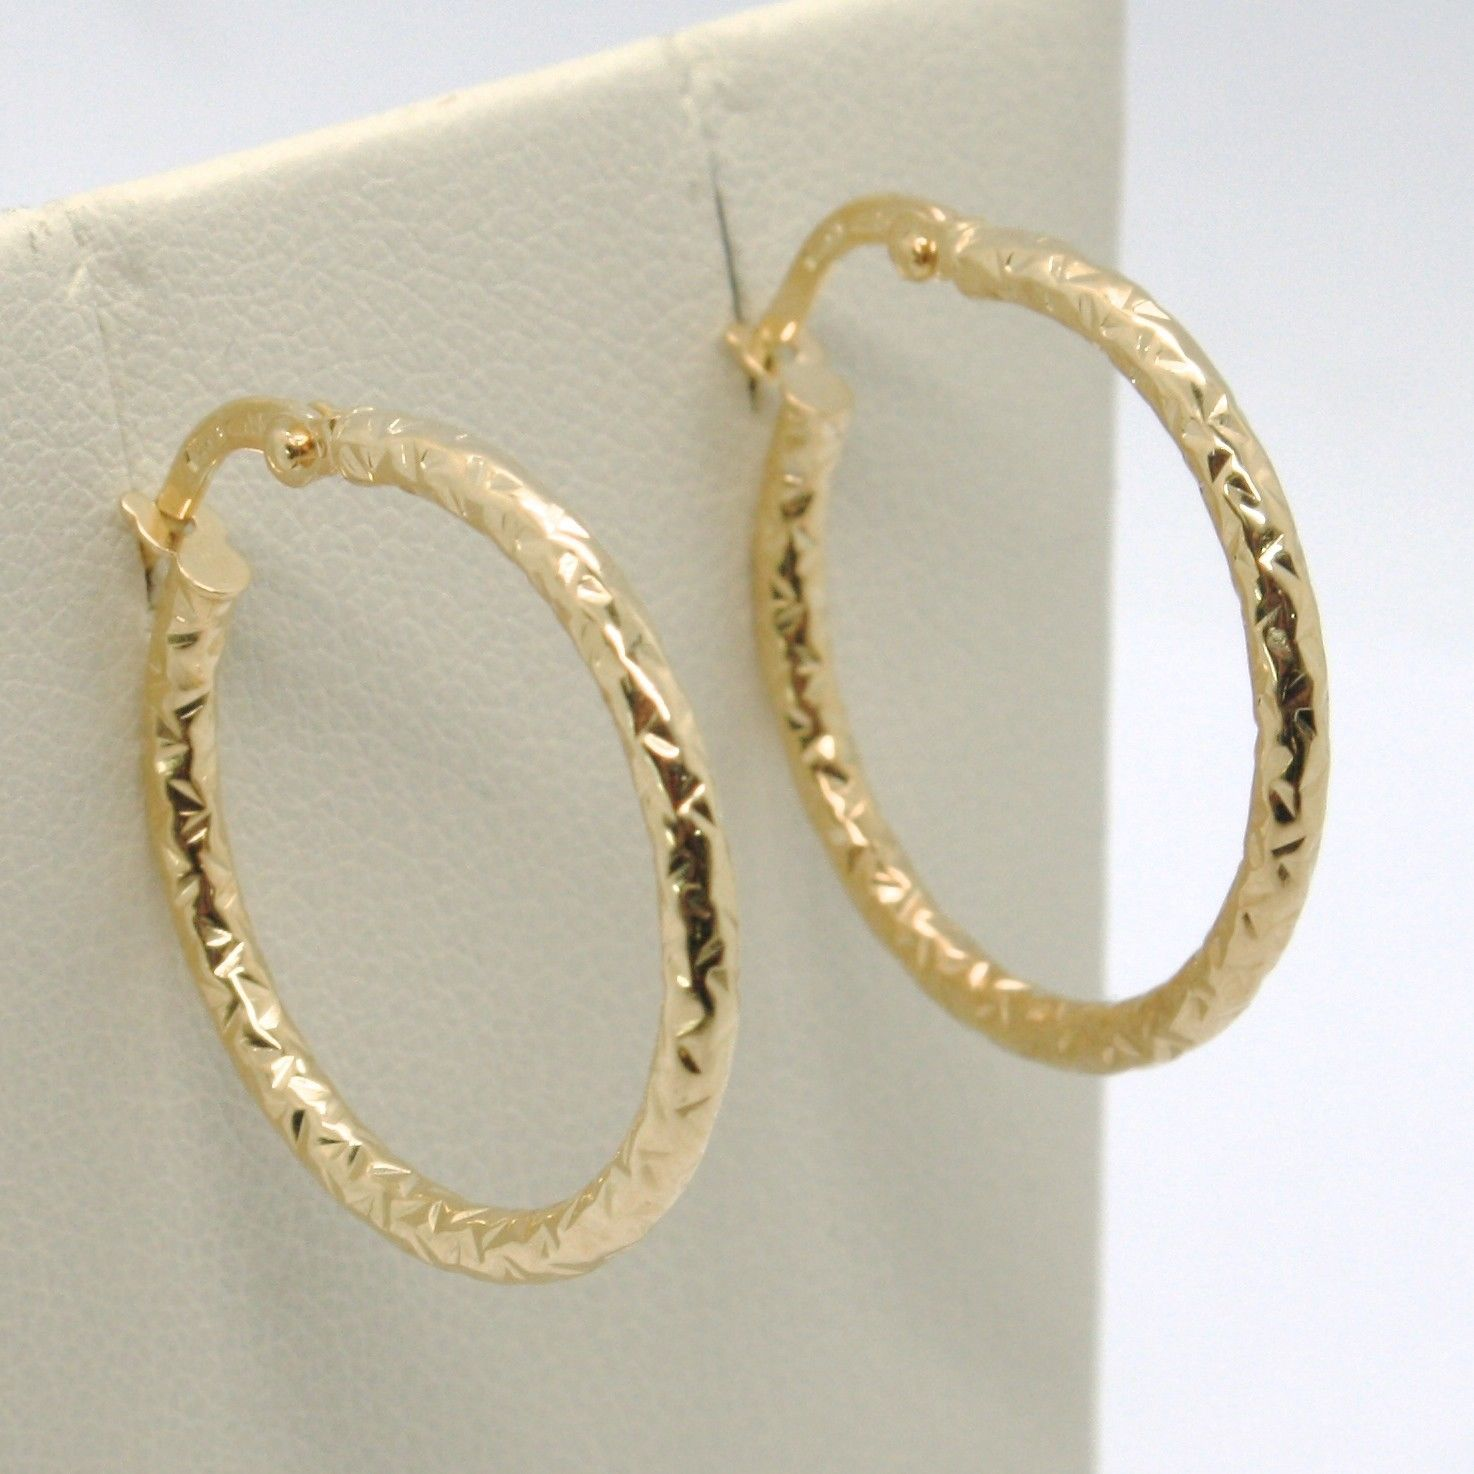 18K YELLOW GOLD CIRCLE HOOPS TUBE HAMMERED EARRINGS 23 MM x 2 MM, MADE IN ITALY